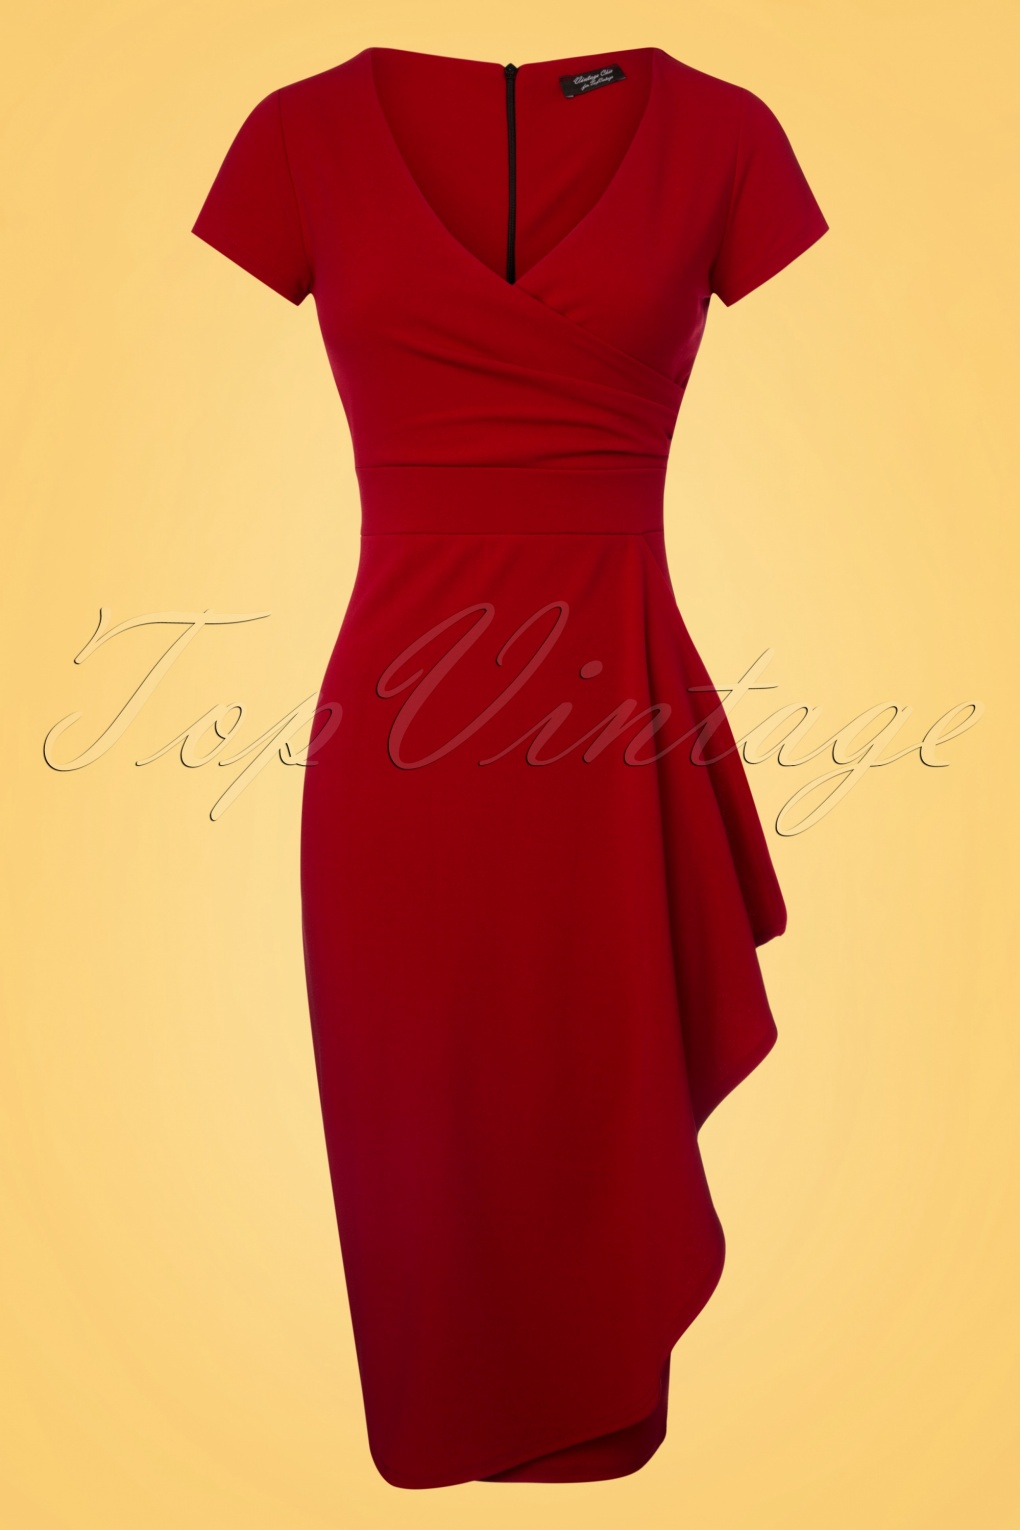 Vintage 50s Dresses: 8 Classic Retro Styles 50s Crystal Pencil Dress in Lipstick Red £48.62 AT vintagedancer.com